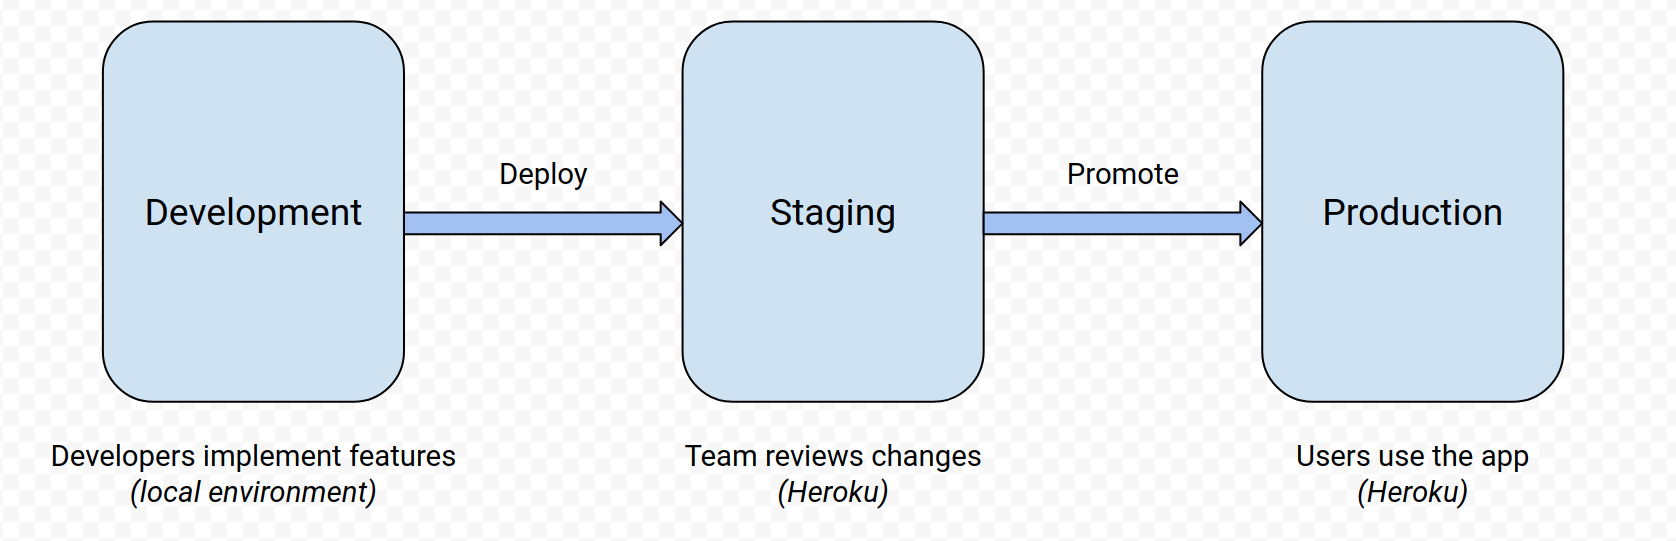 Deployment workflow diagram